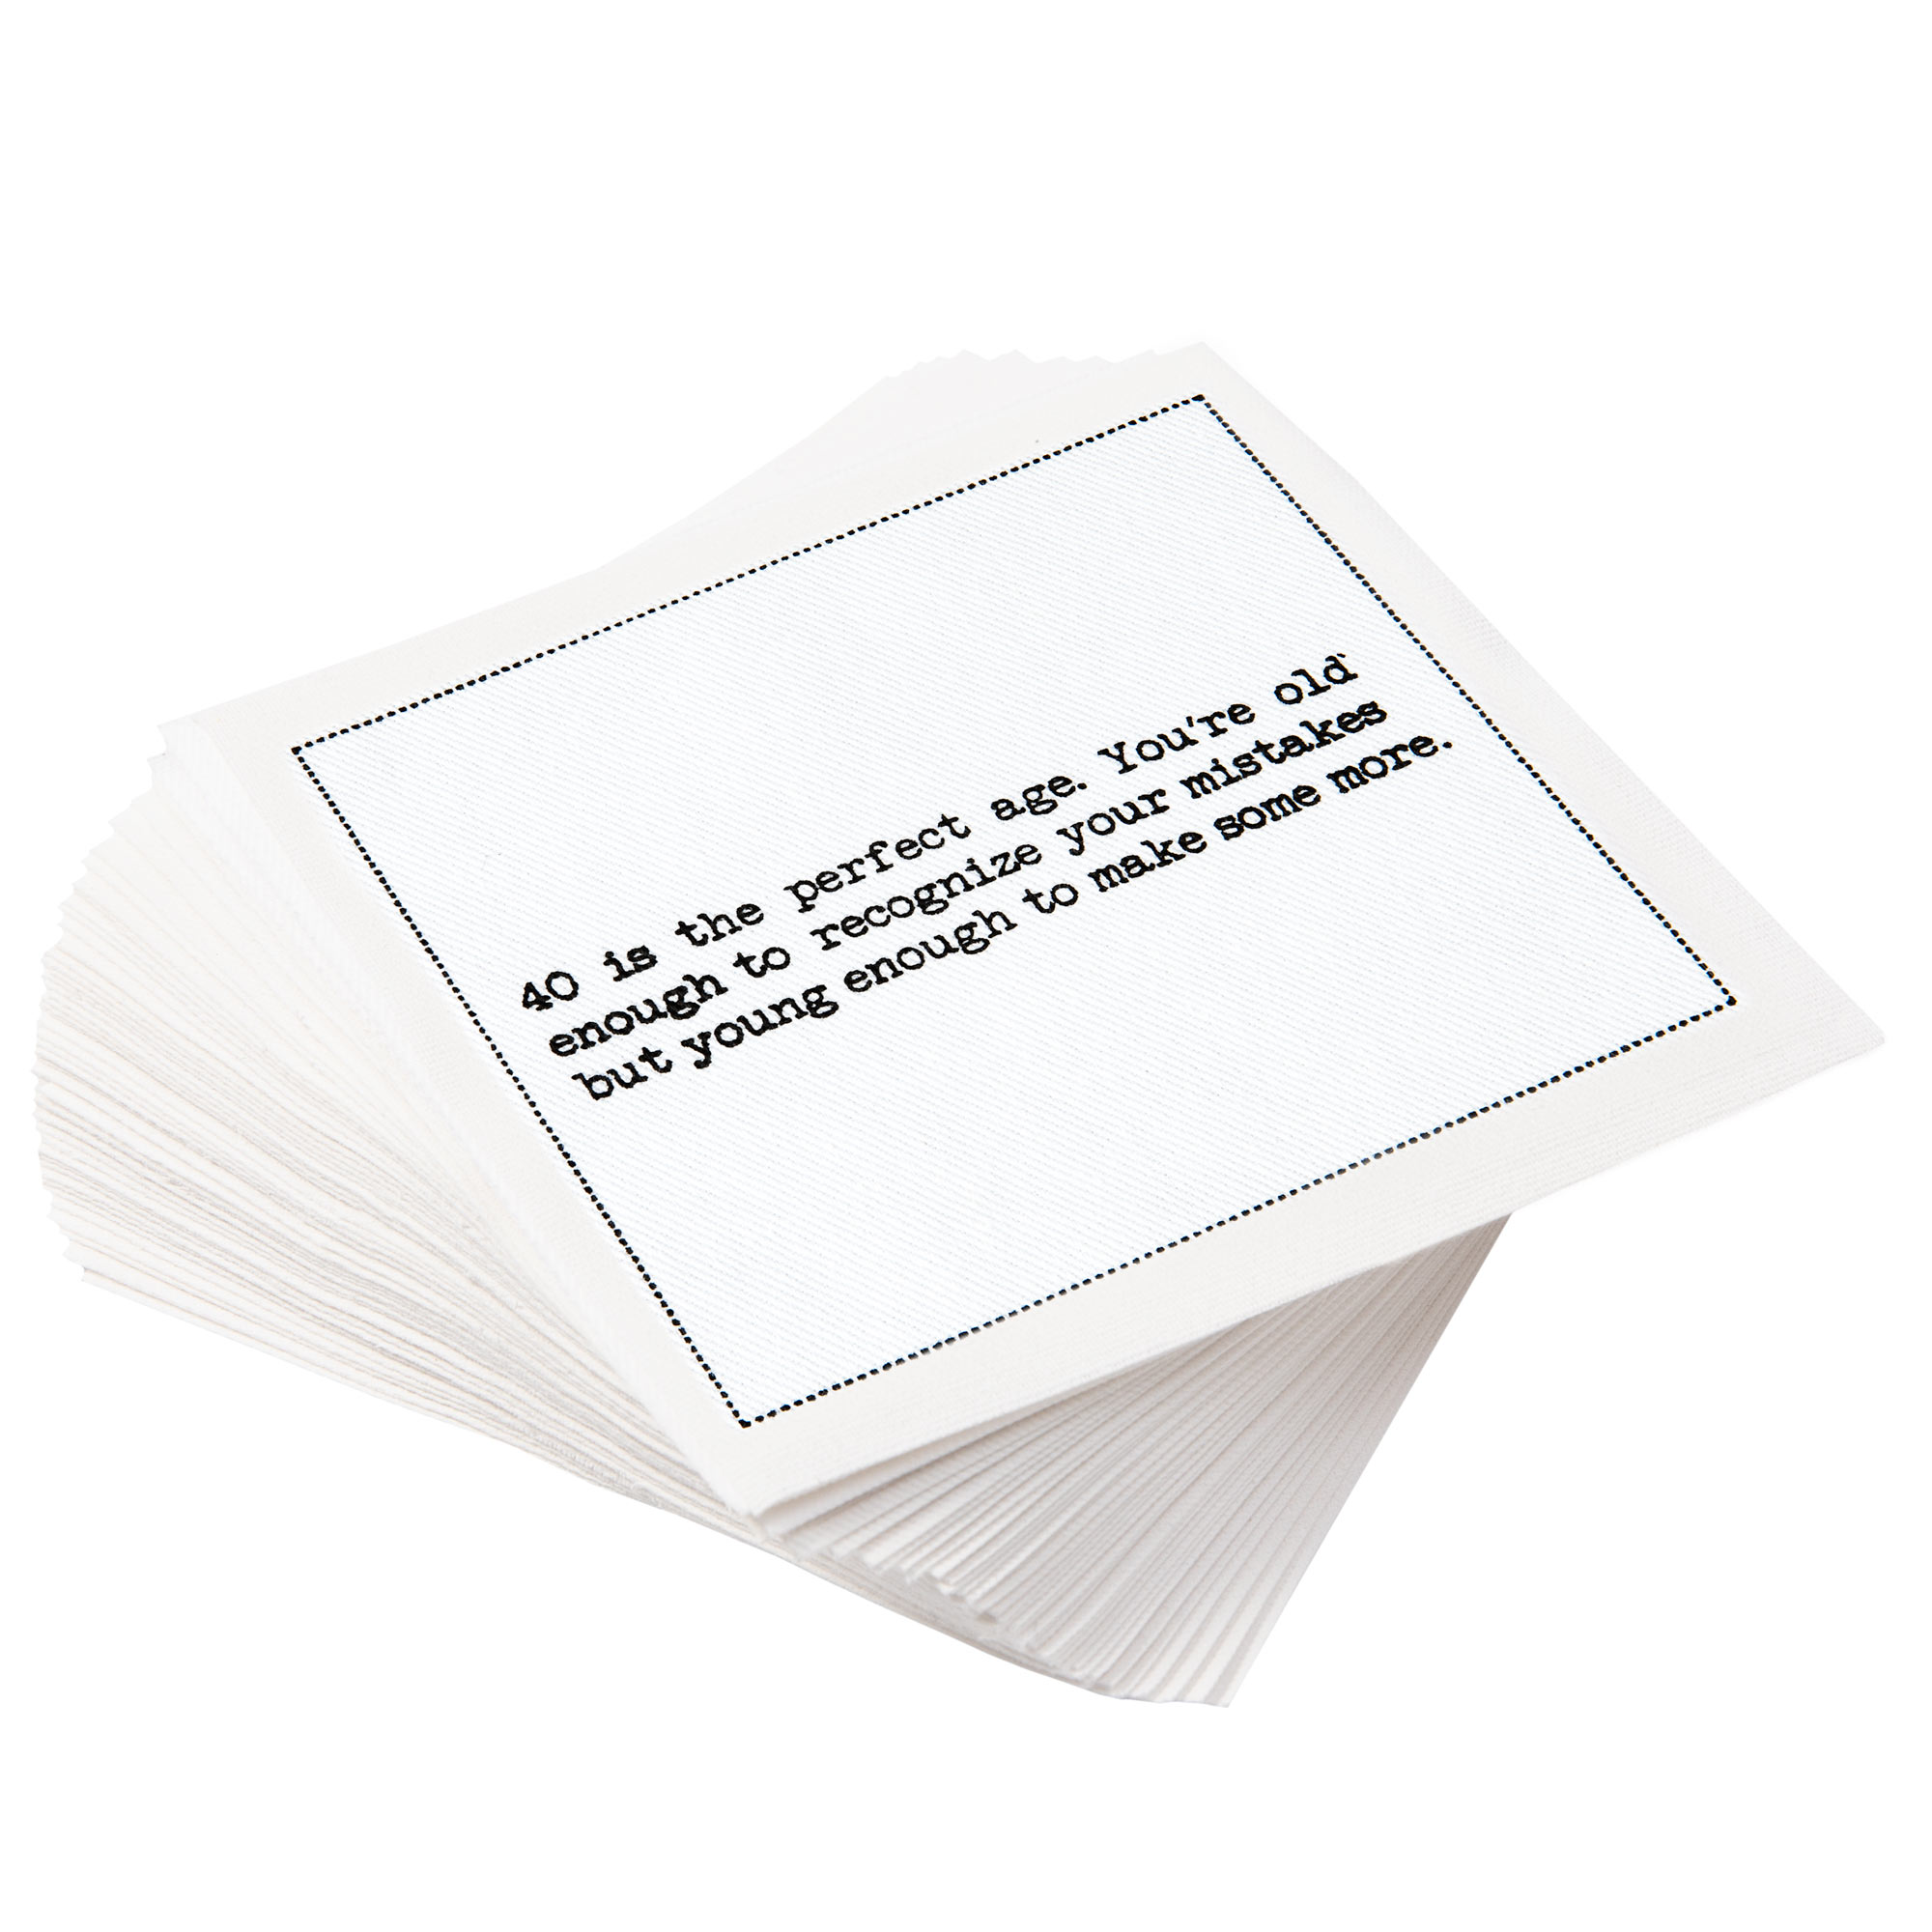 """White Cotton Cocktail with 40th Birthday Quotes - 4.5"""" x 4.5"""" - 1200 units - 50 units per pack"""